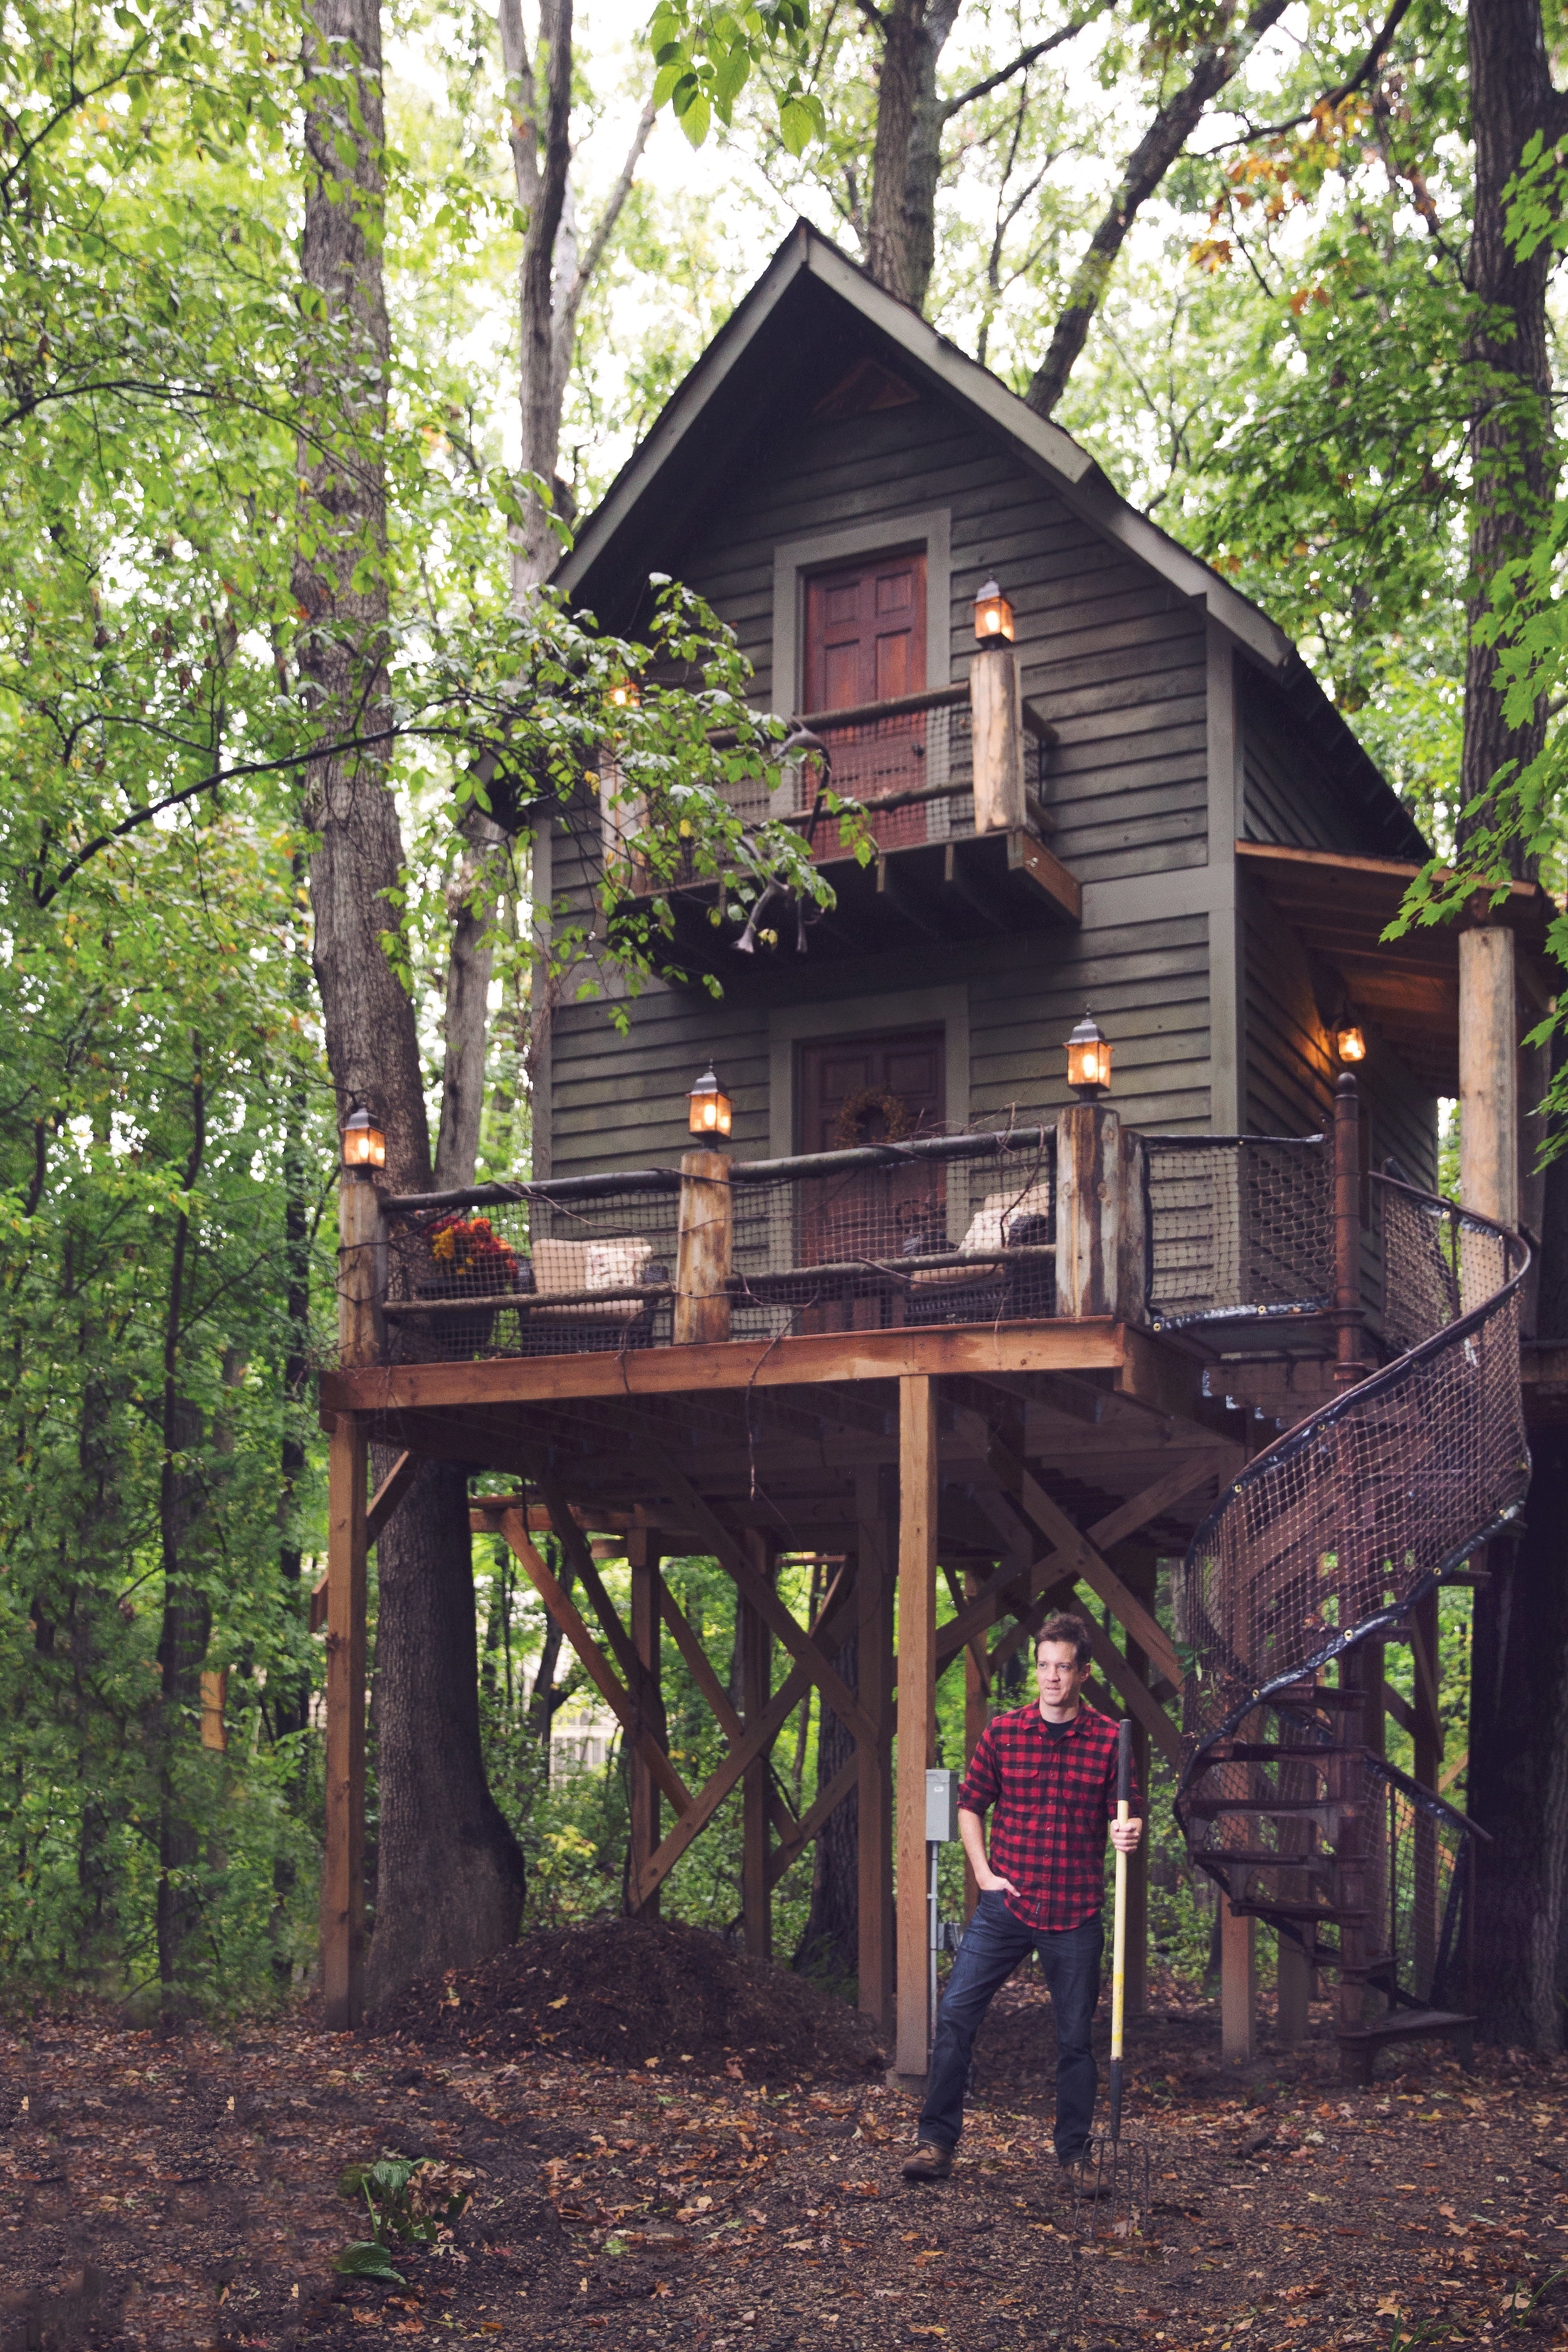 1117_cover_PLY8210_1117_Treehouse_RN _0059.jpg